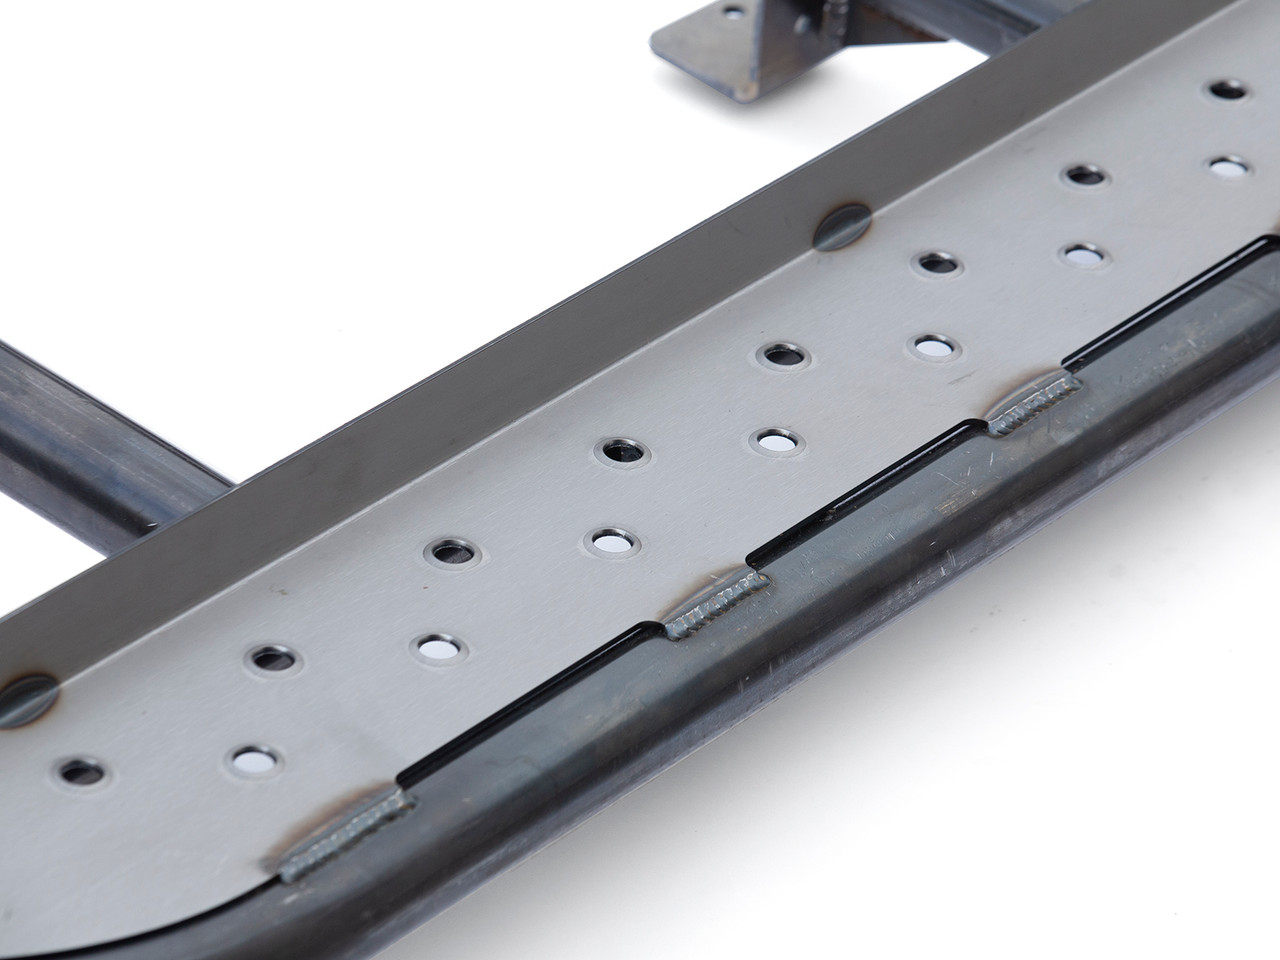 Dimple die step for superior traction